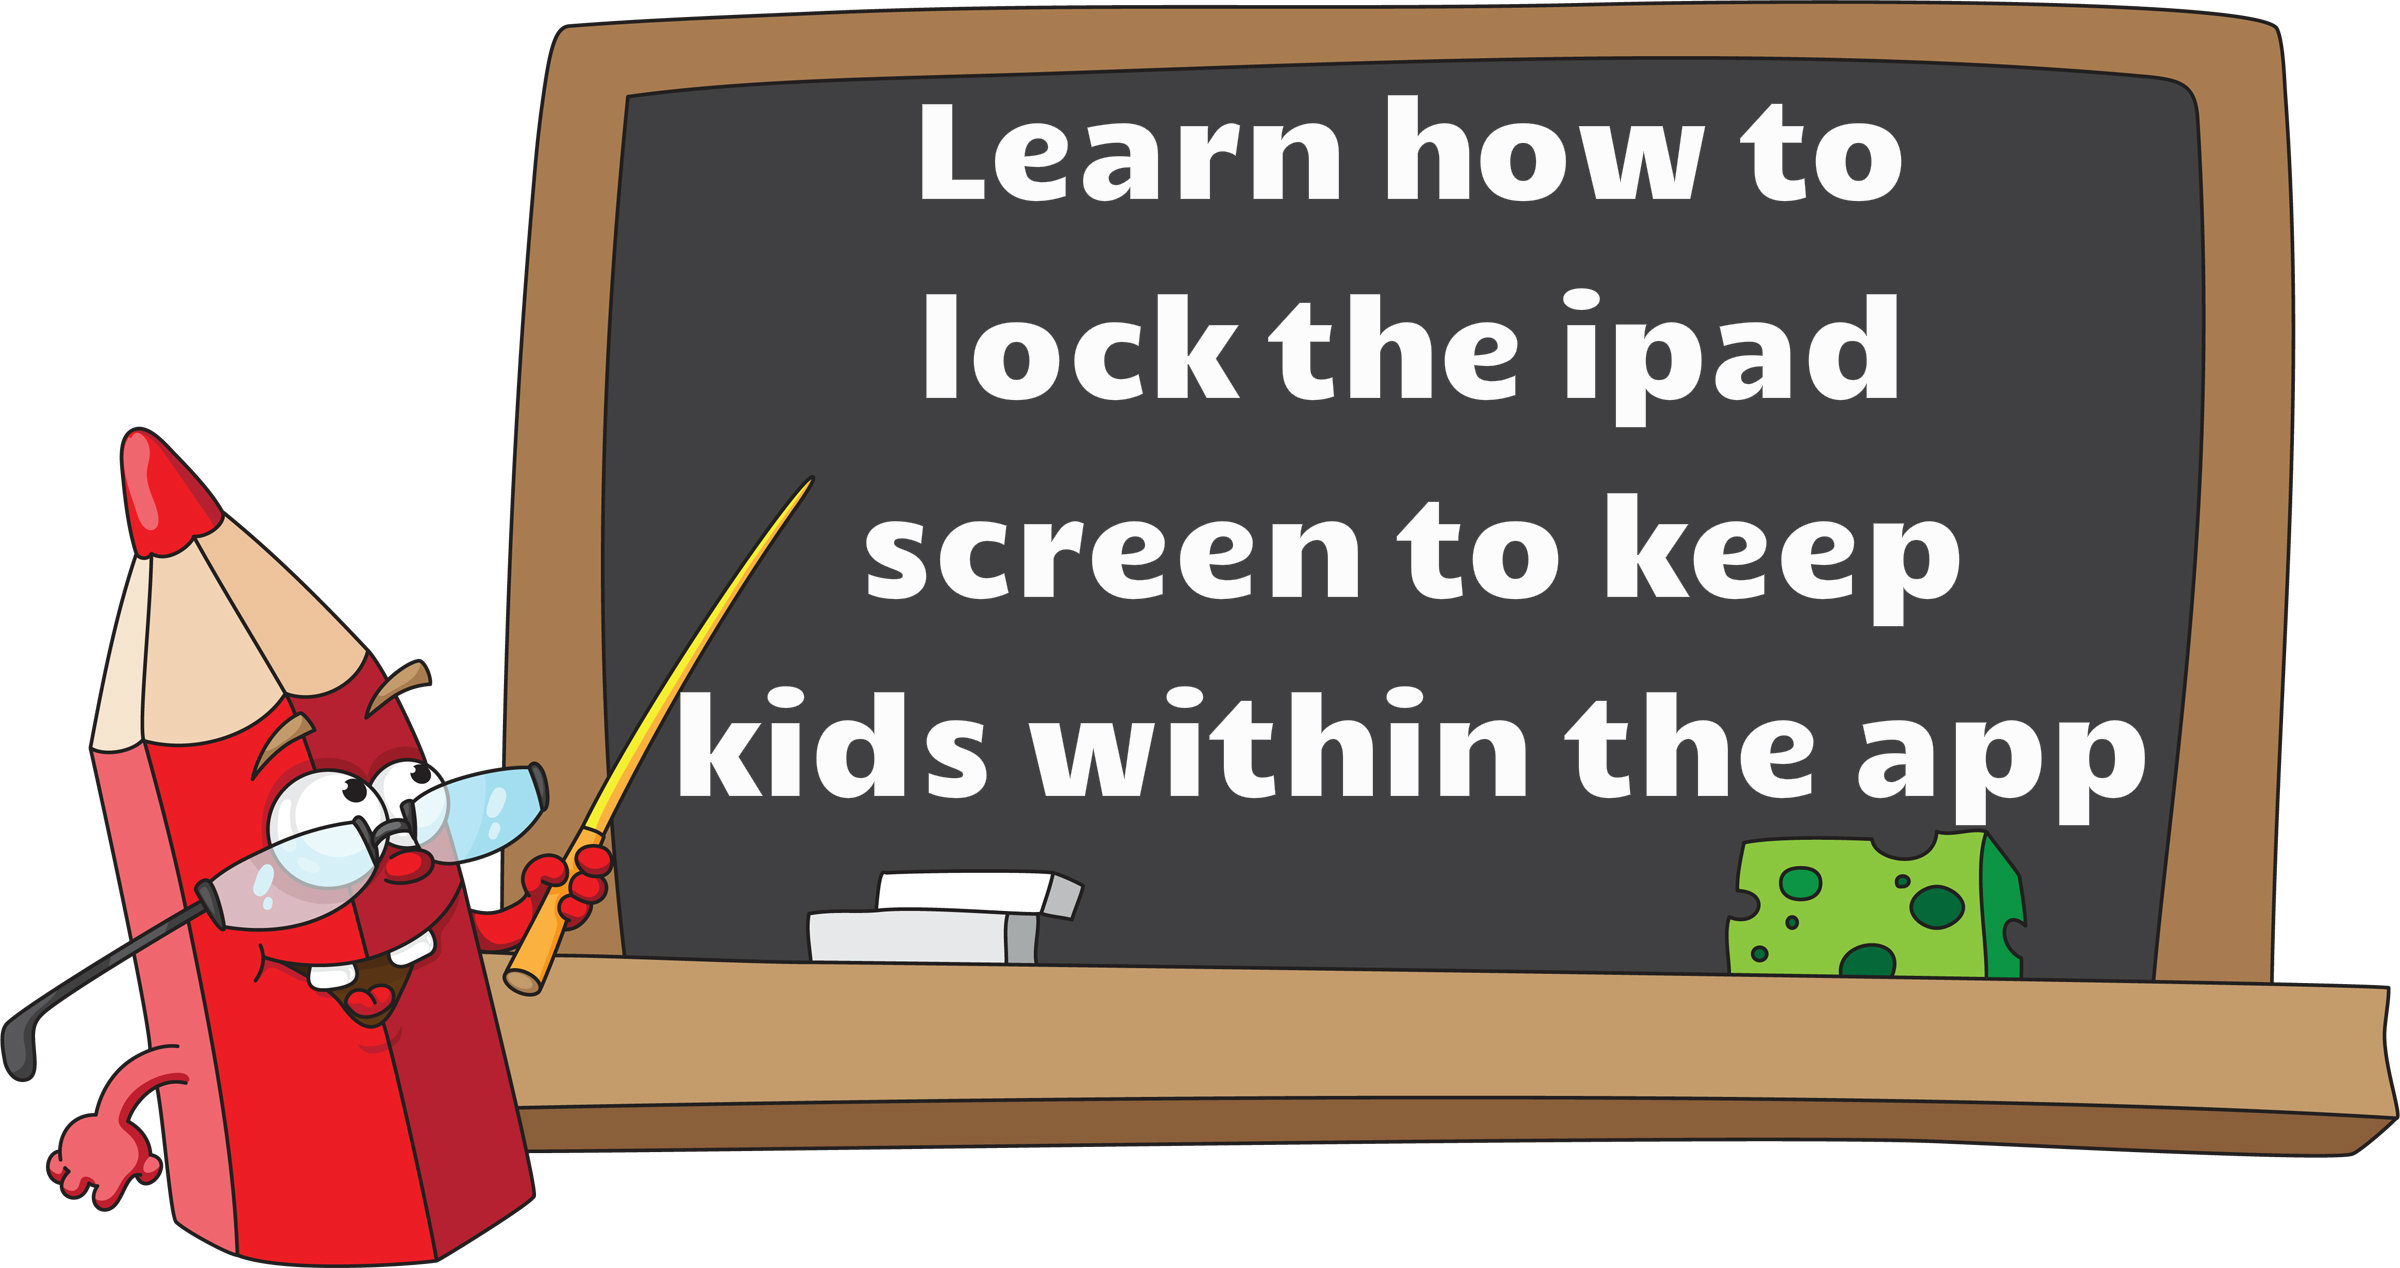 Ipad-tricks-and-tips.jpg